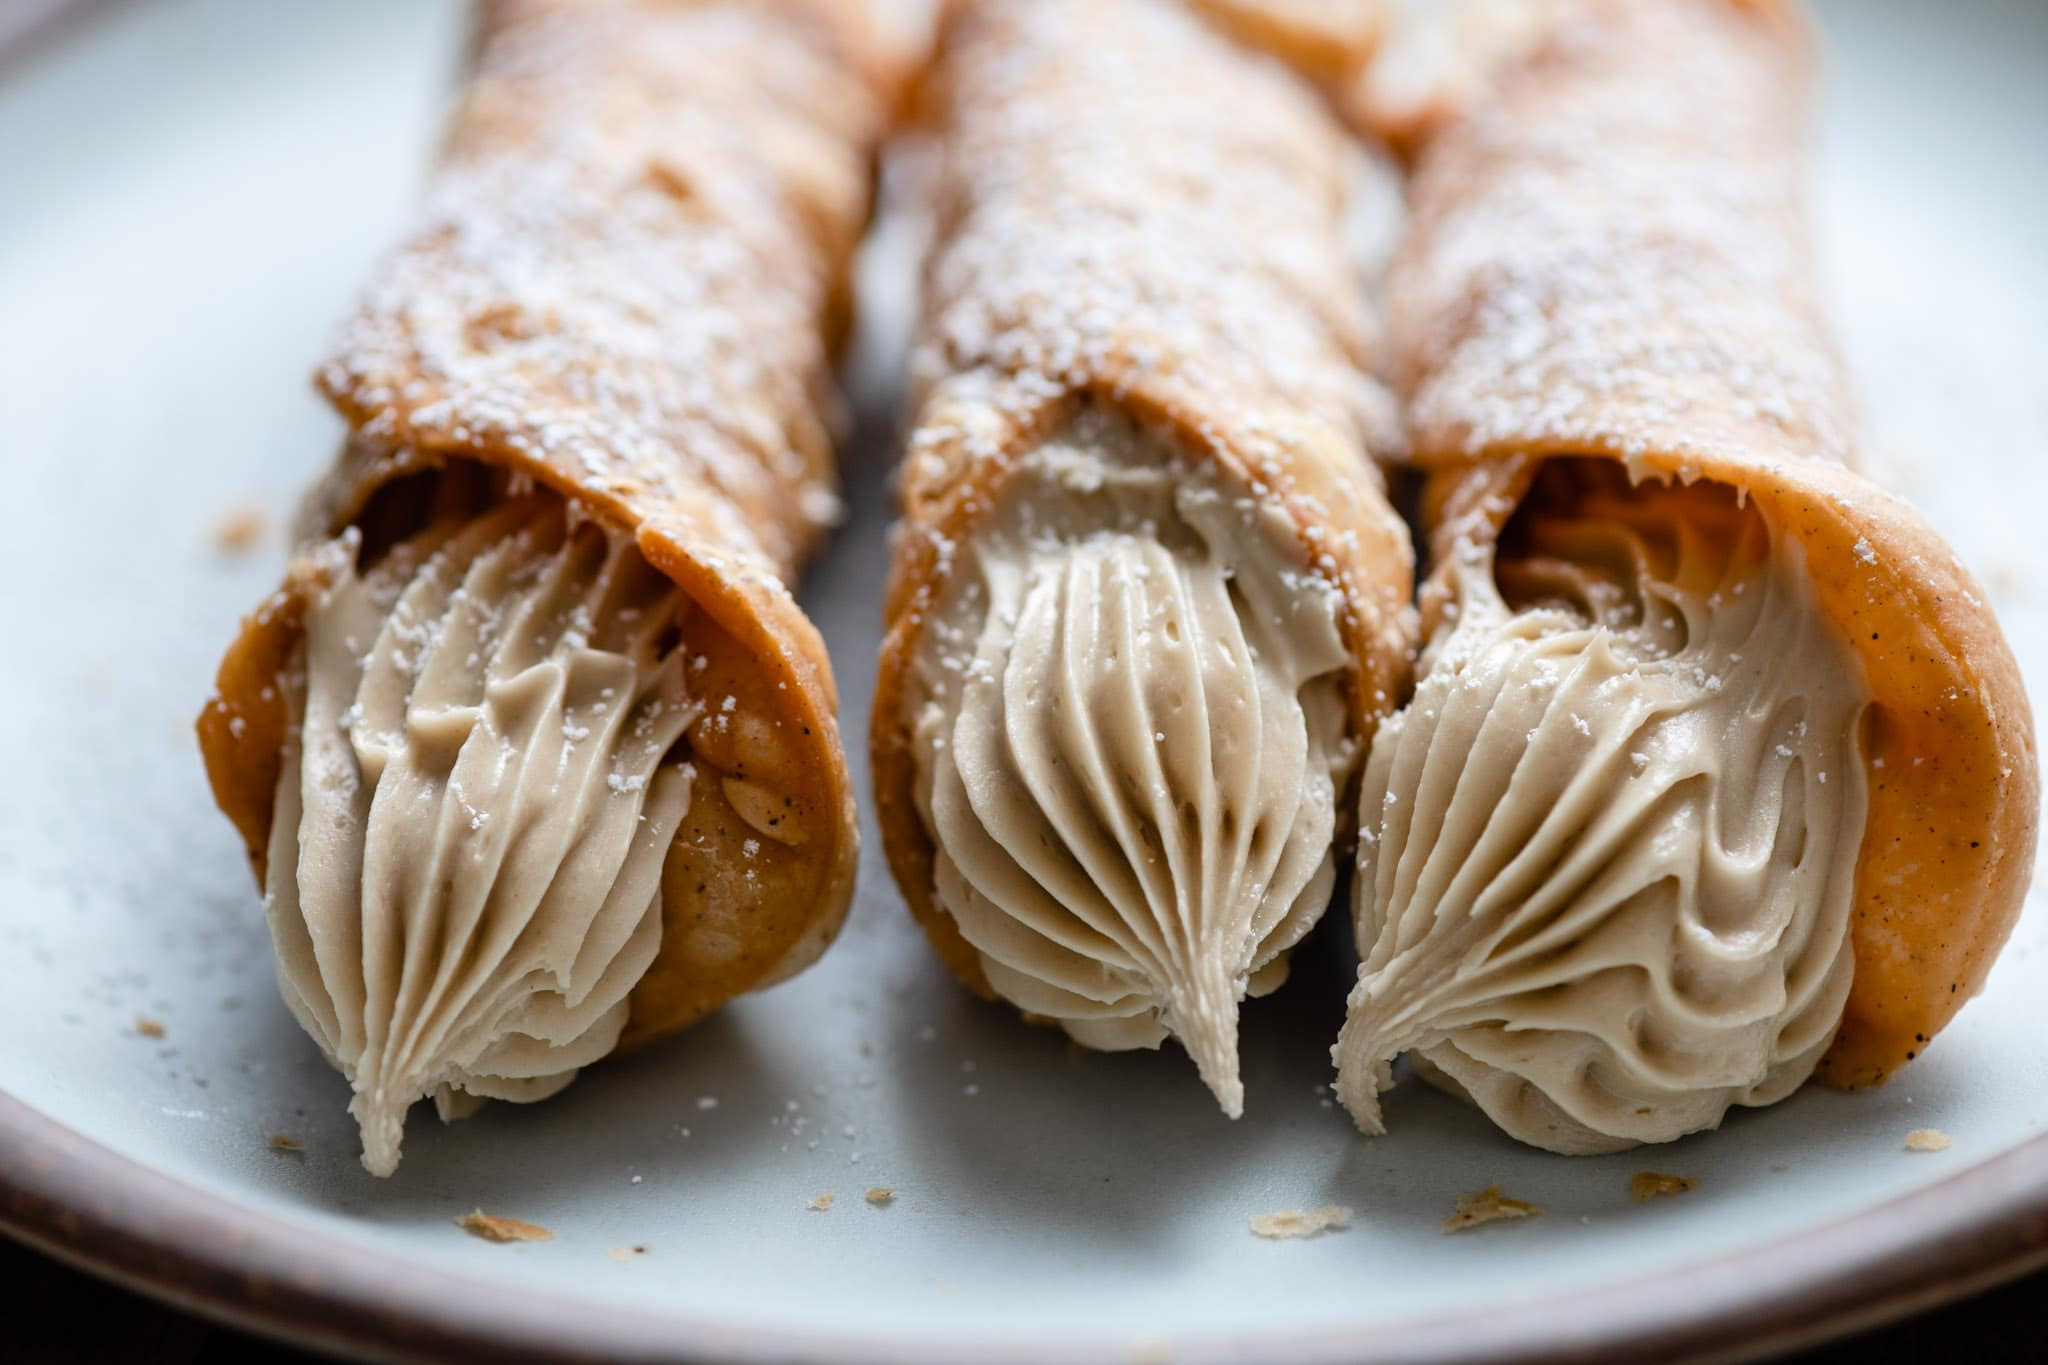 Homemade Cannoli recipe with sunflower butter filling